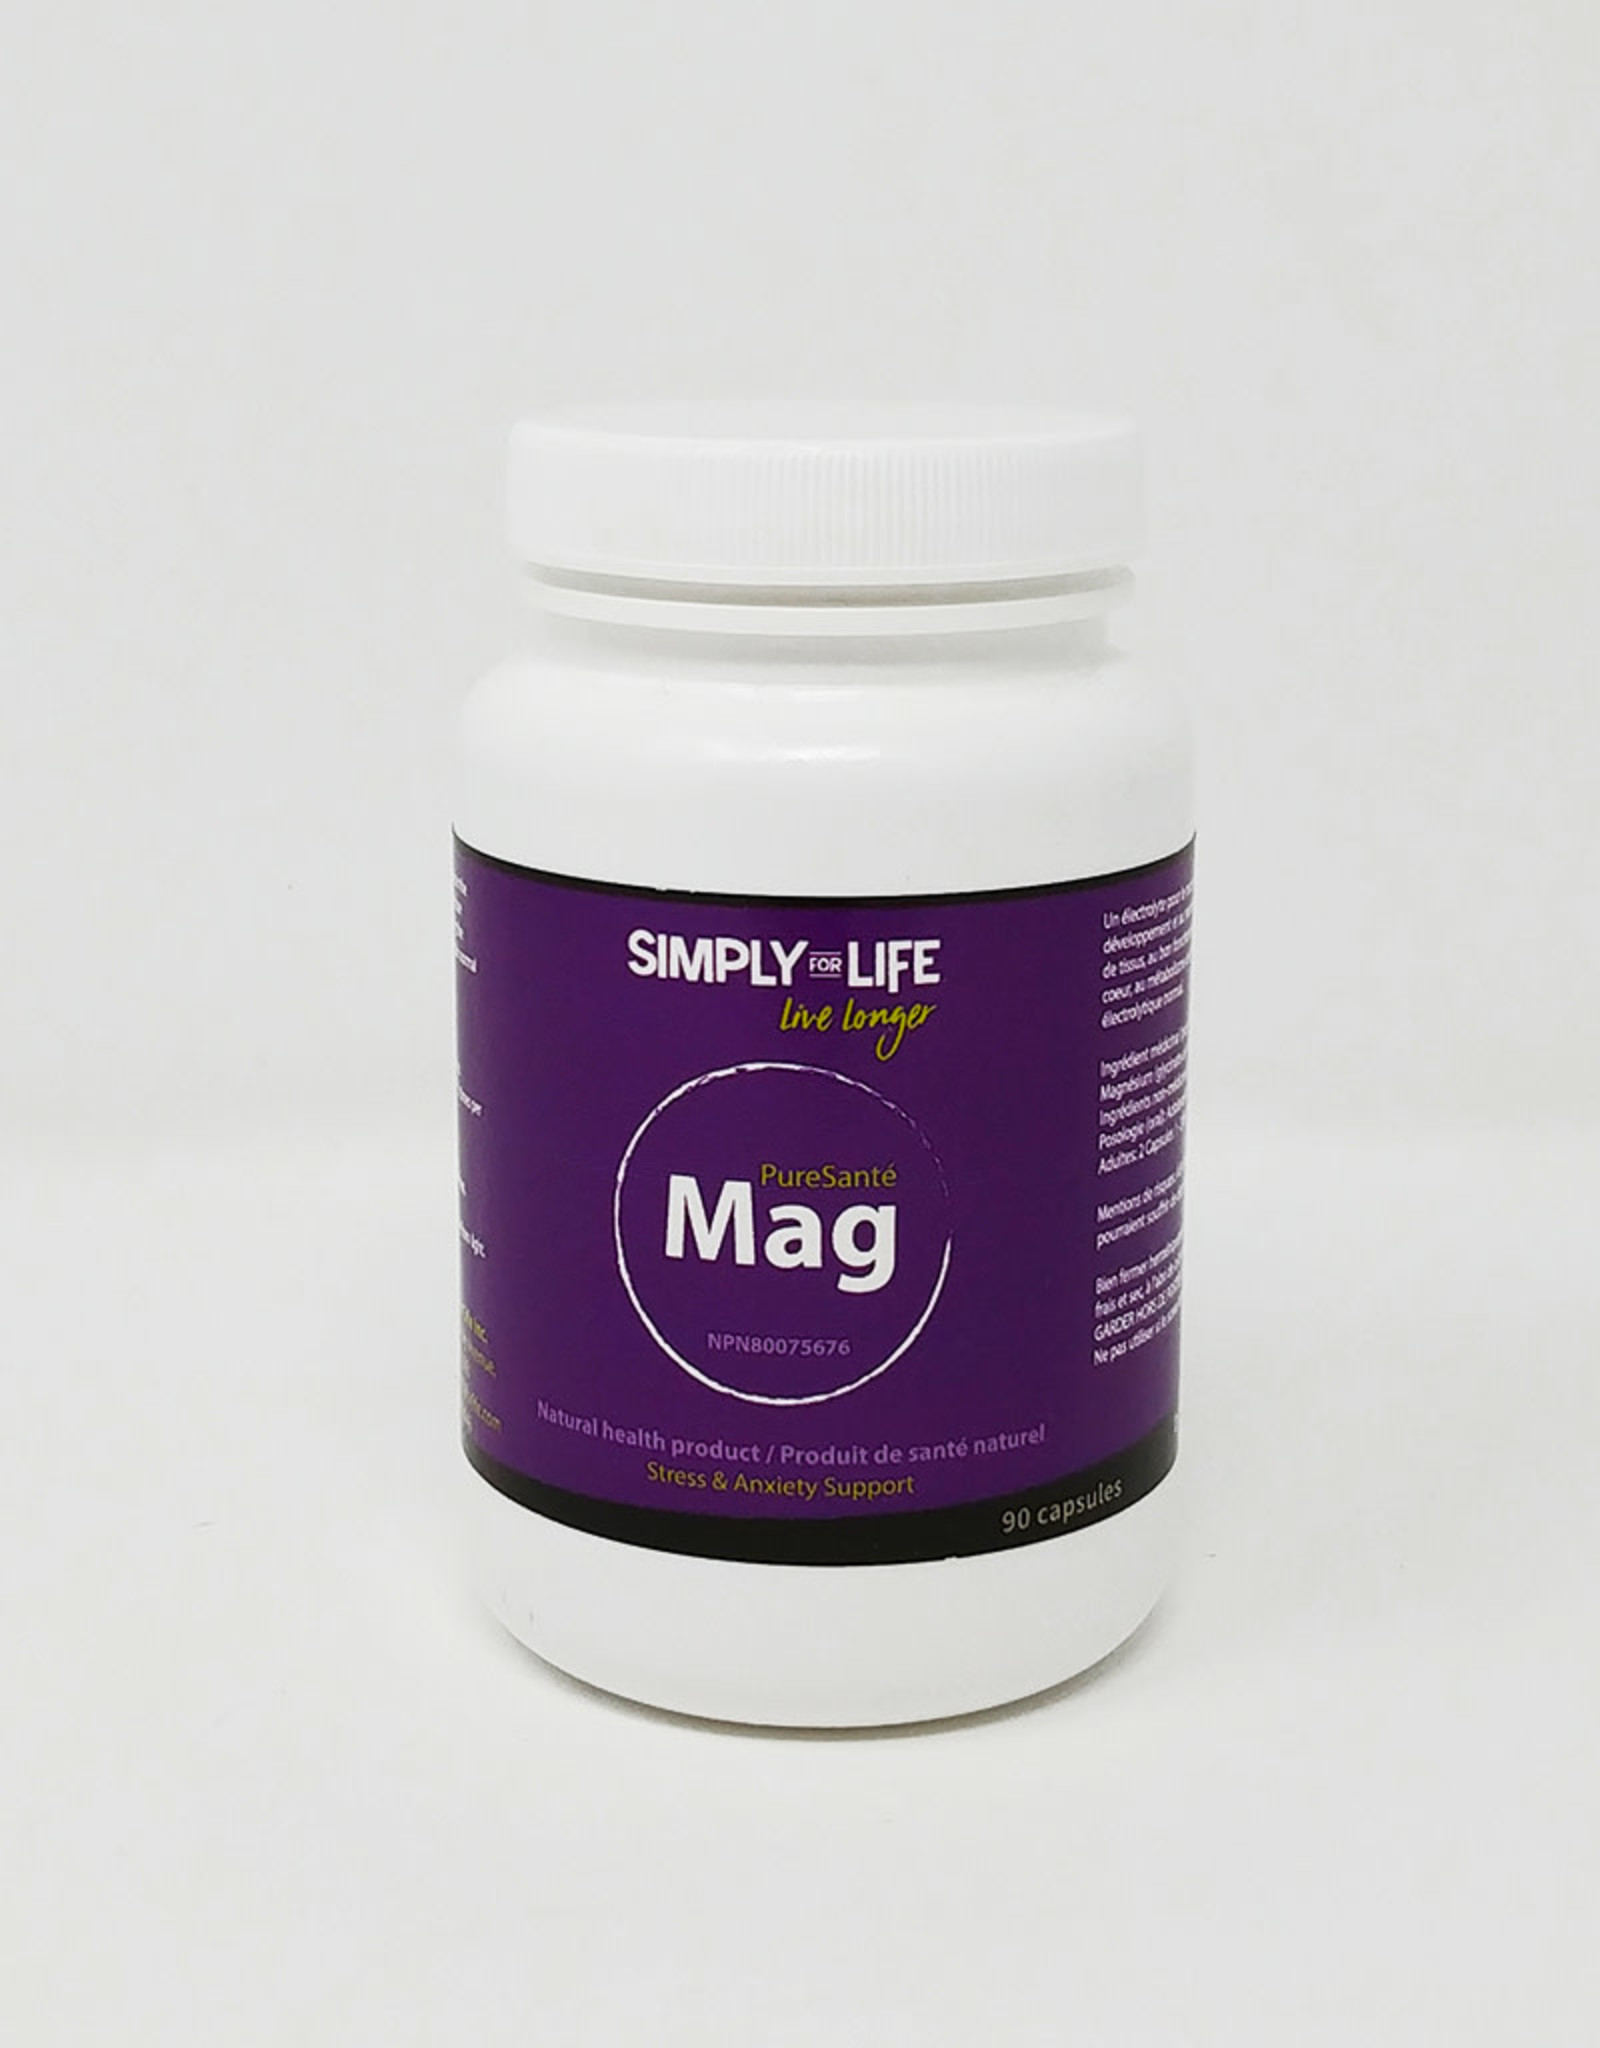 Simply For Life Simply For Life - Suppléments, Magnésium (90cap)